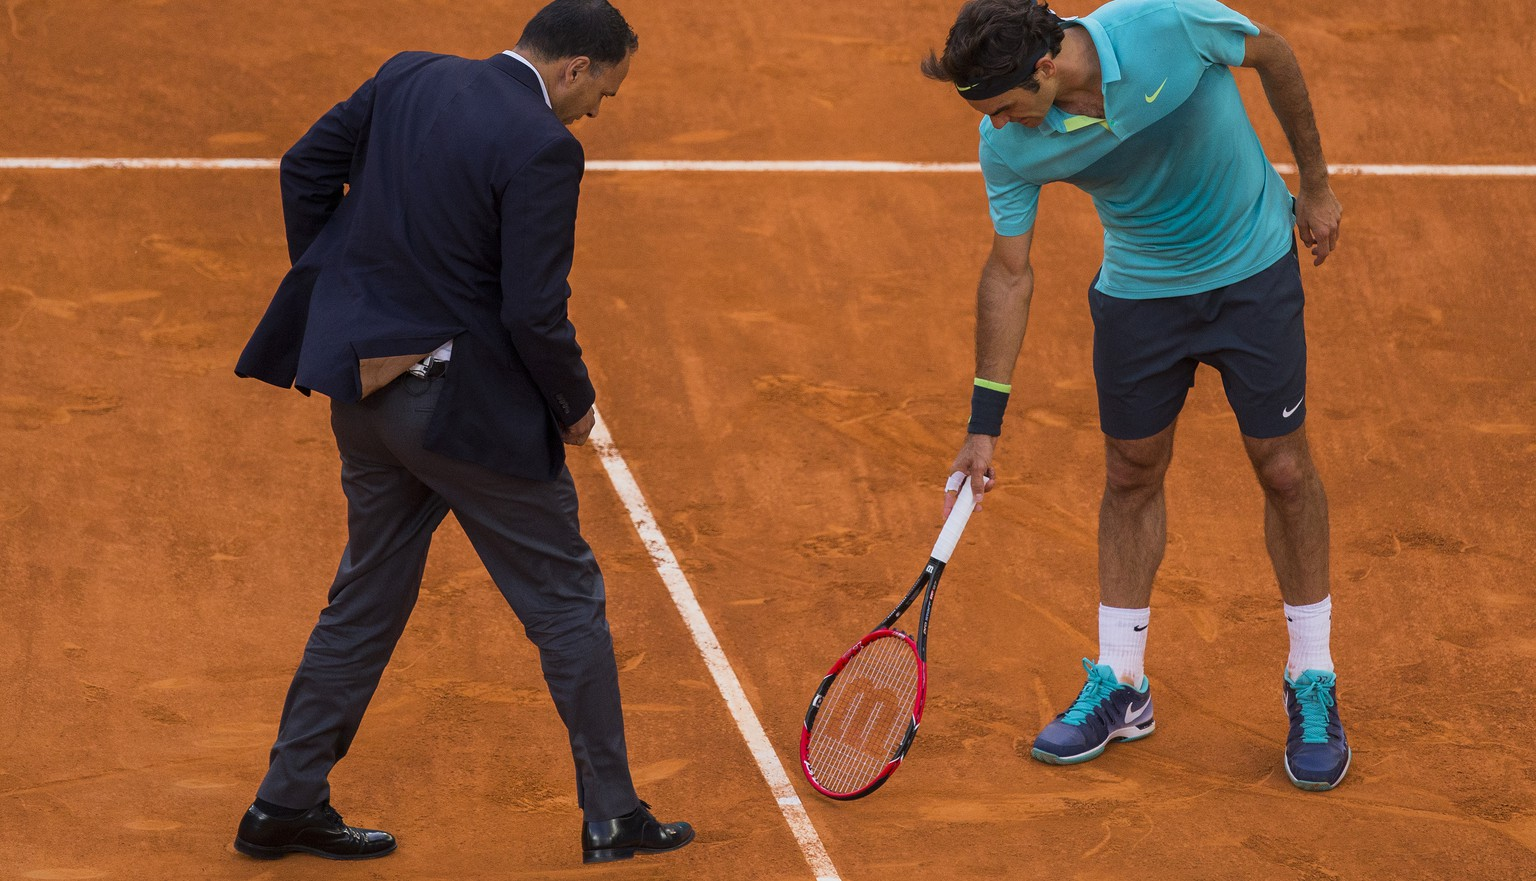 Roger Federer from Switzerland, right, talks to the umpire during the Madrid Open tennis tournament match against Nick Kyrgios from Australia in Madrid, Spain, Wednesday, May 6, 2015. (AP Photo/Andres Kudacki)